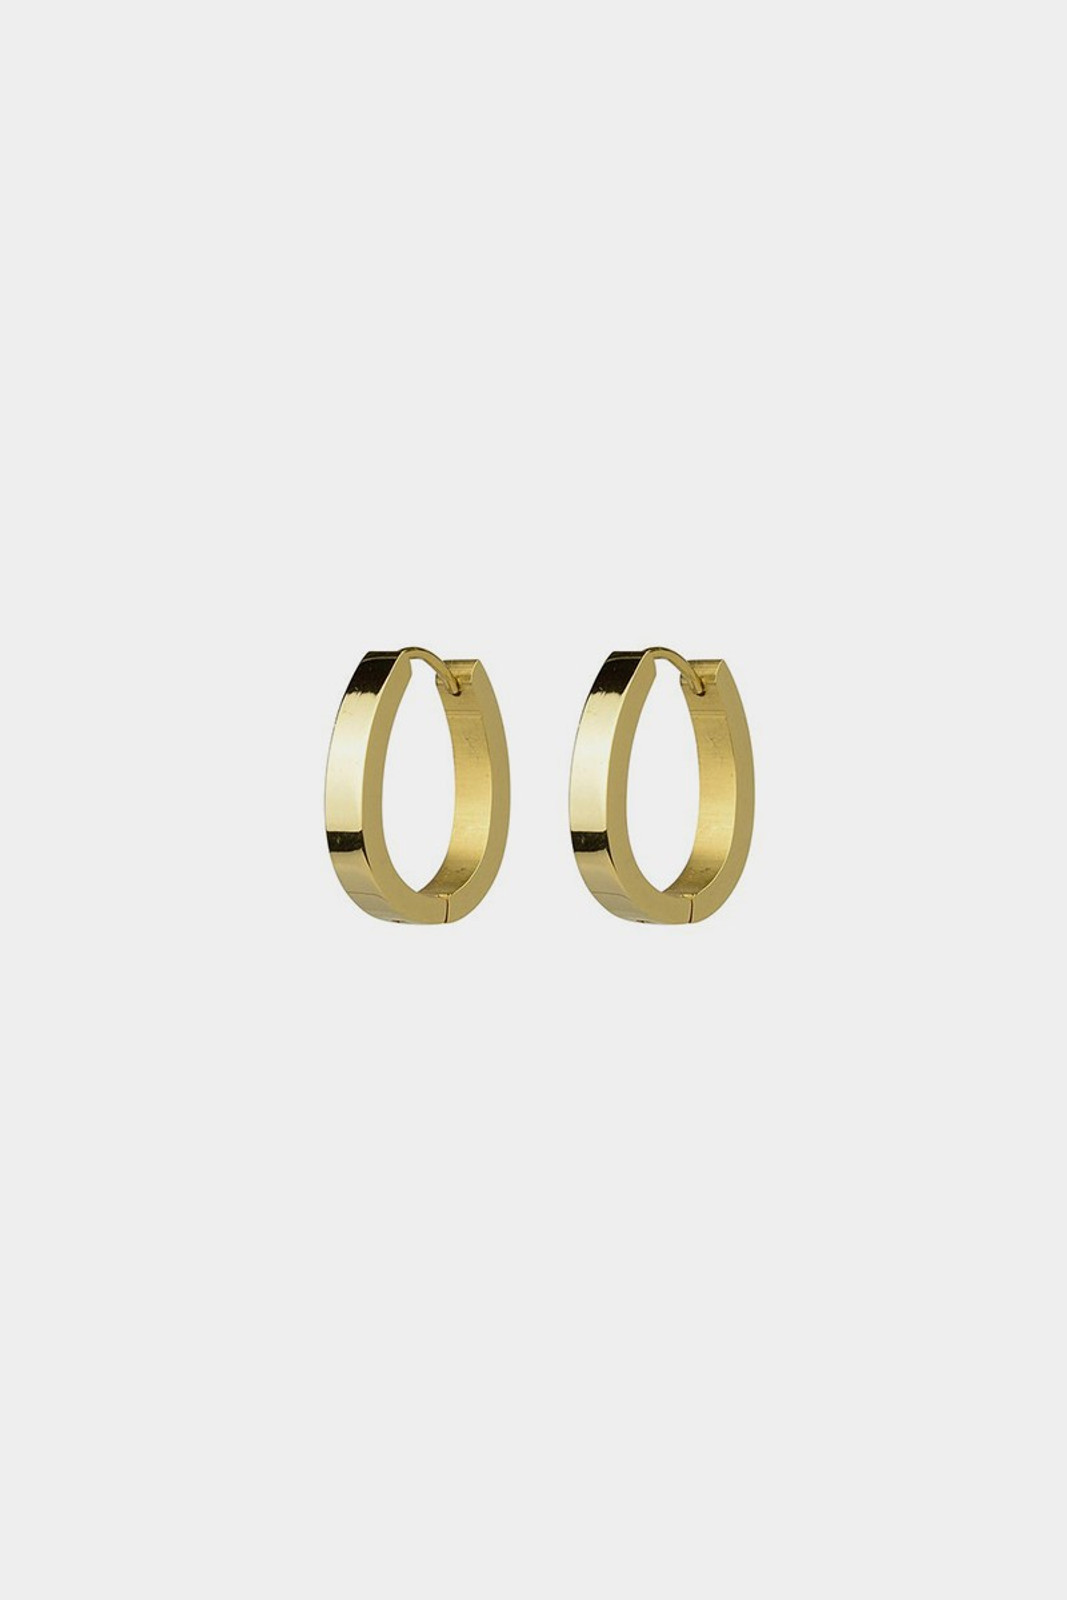 Elka Collective BRIE LEON CLASICA EARRINGS Gold  0